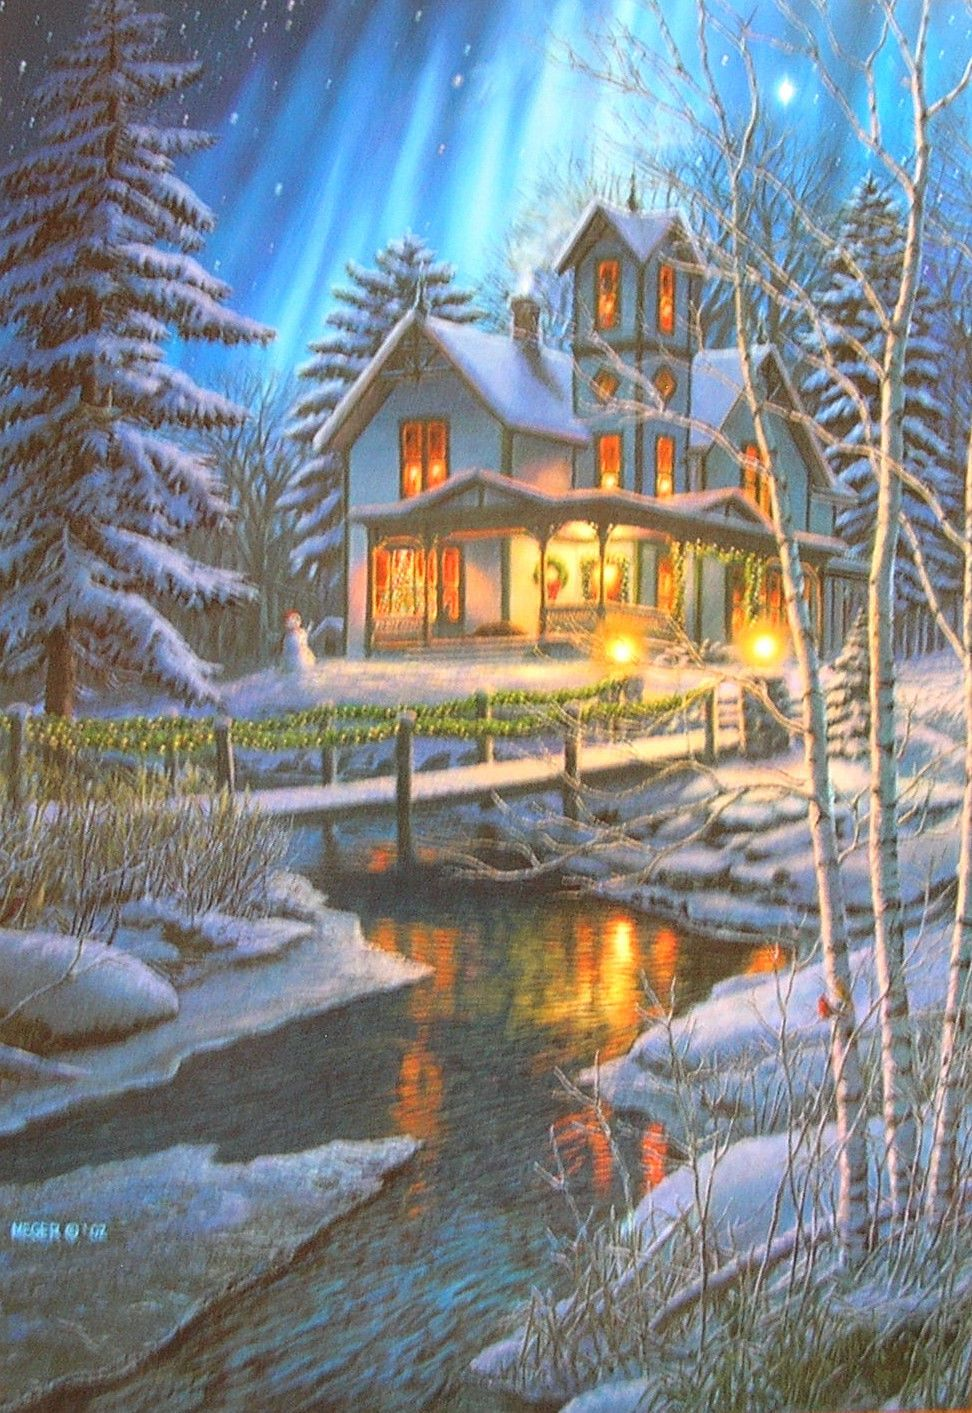 Leanin\' Tree James Meger Home Pine Trees Northern Lights Christmas ...